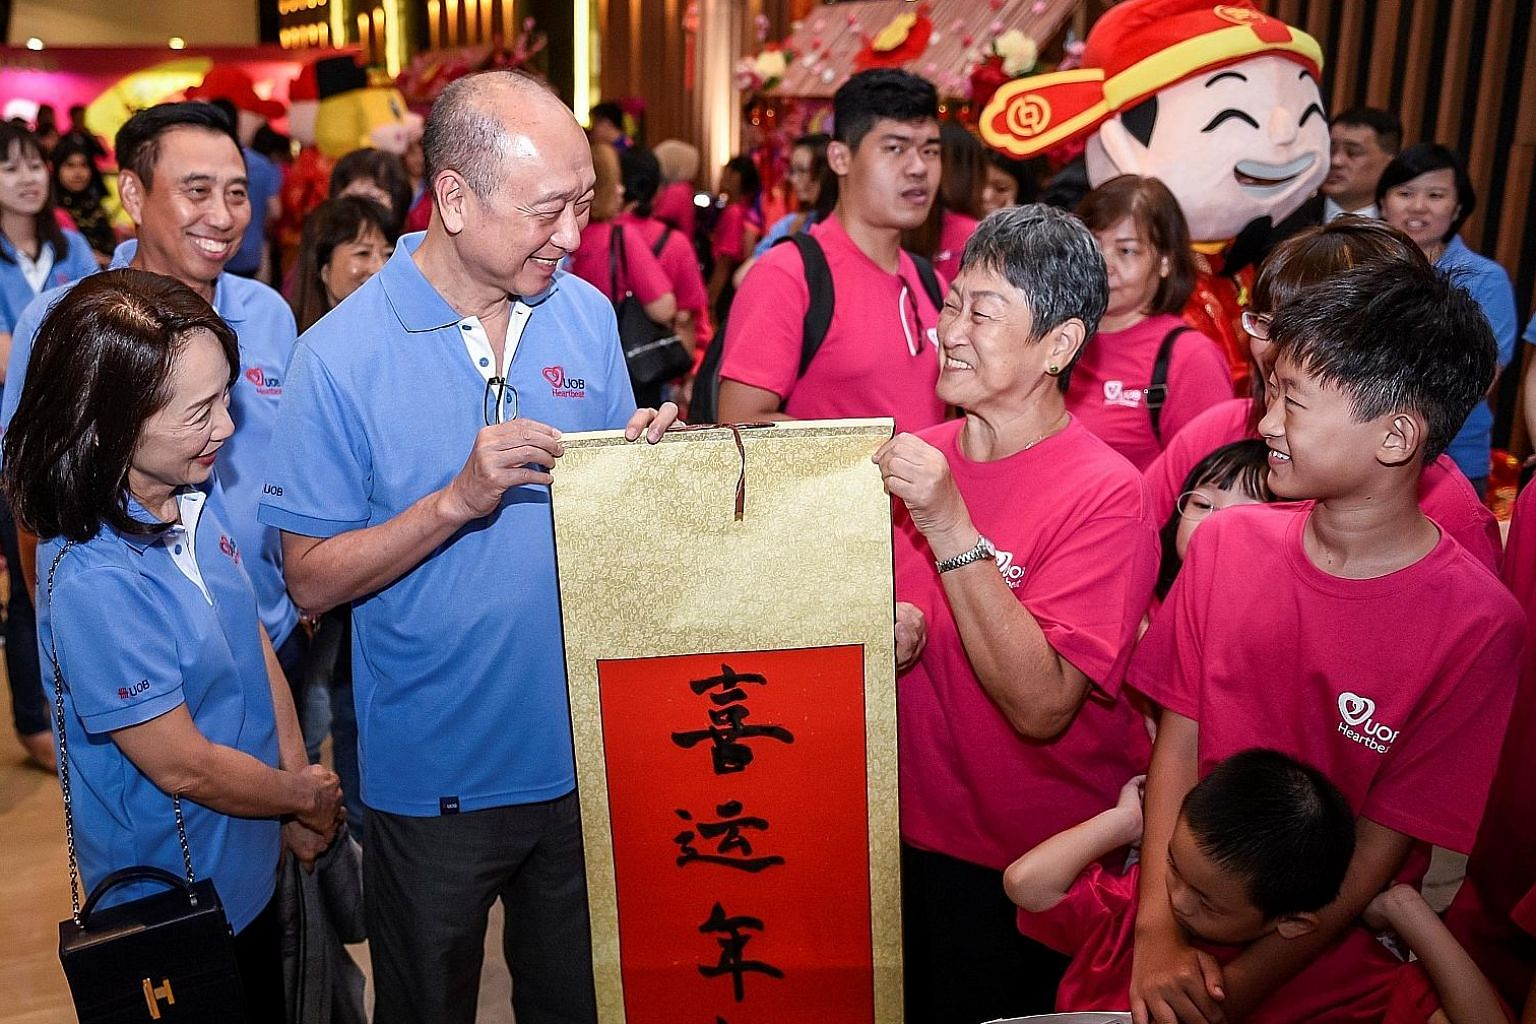 Mr Wee Ee Cheong (second from left), deputy chairman and chief executive of UOB, and Mrs Wee, seen here with Mr Eric Tham (back row, far left), head of UOB's group commercial banking, presenting a Chinese calligraphy scroll for Chinese New Year to a